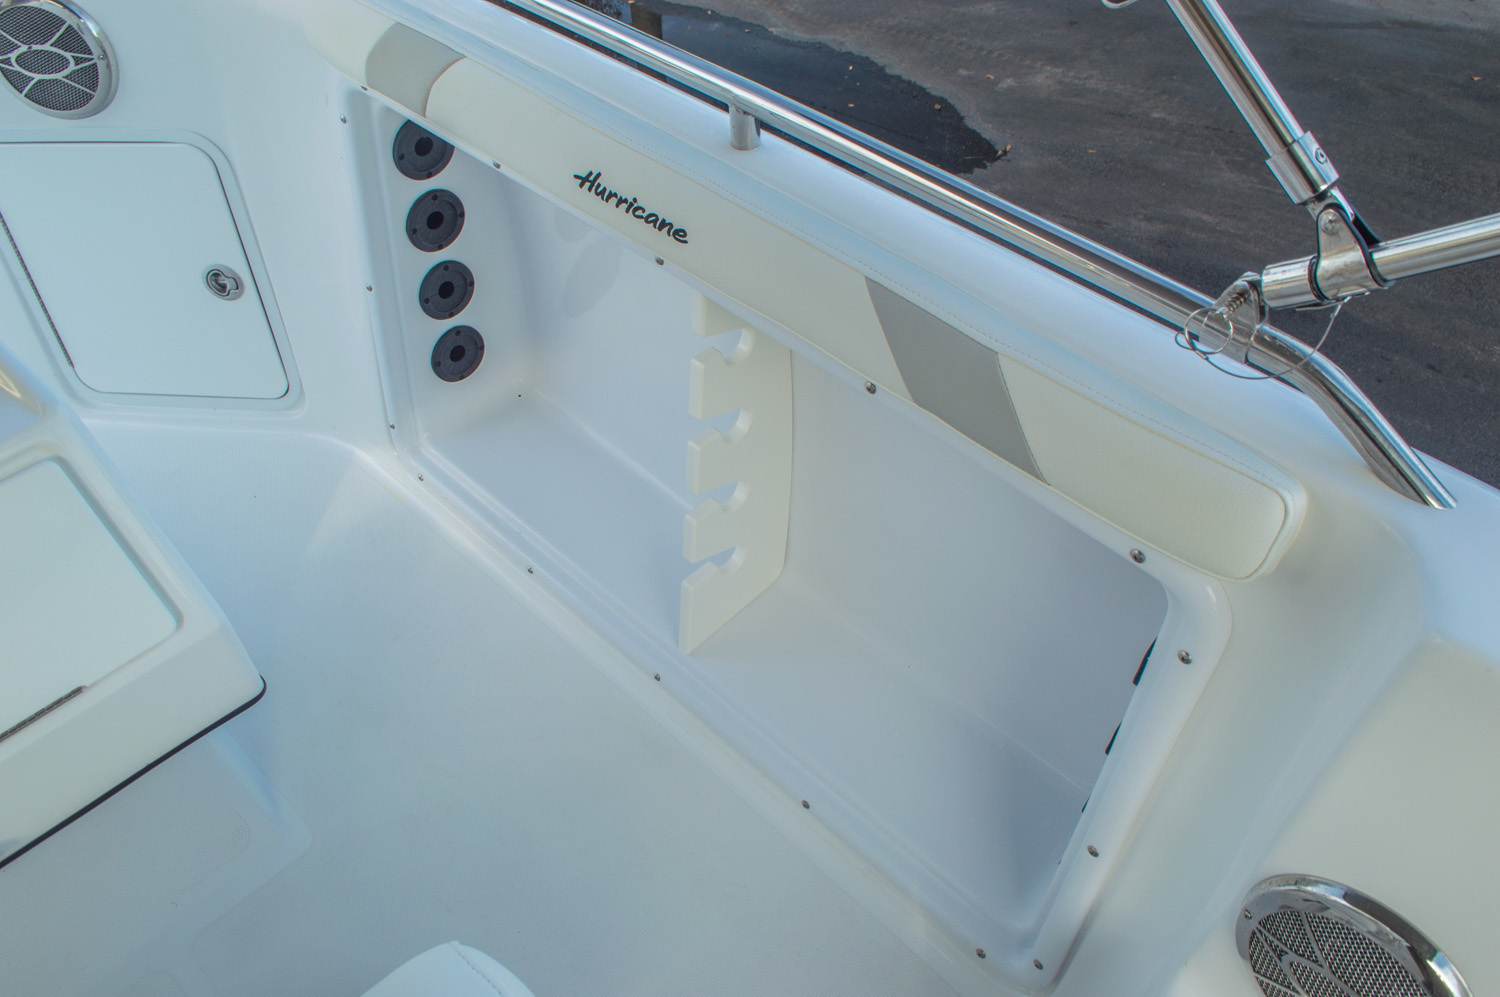 Thumbnail 37 for New 2016 Hurricane CC211 Center Consle boat for sale in West Palm Beach, FL